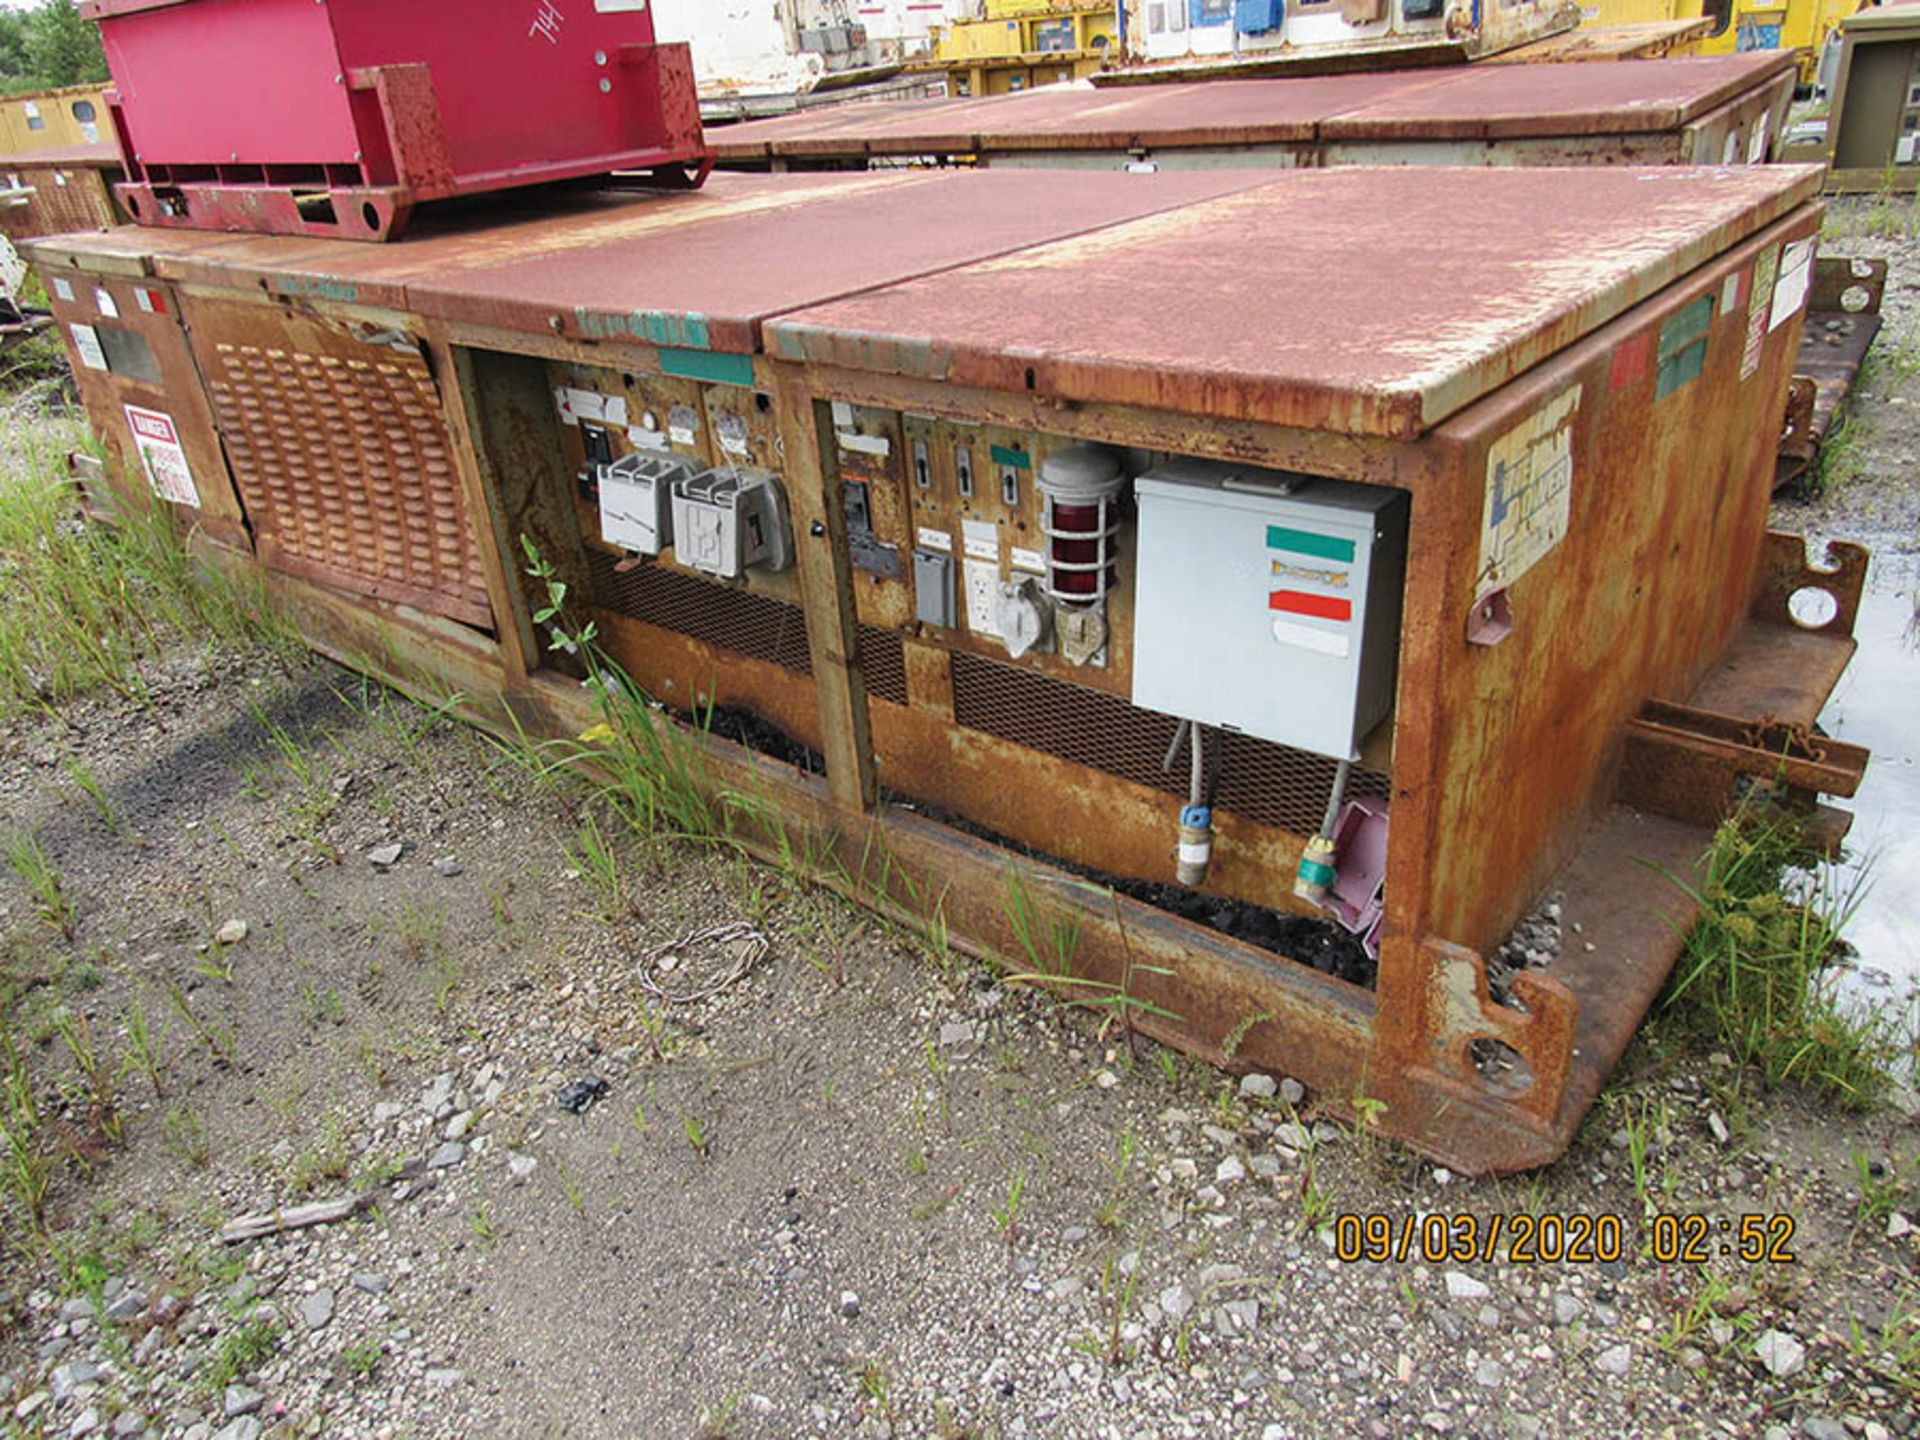 Lot 740 - LINE POWER CO MODEL 650PC POWER CENTER, S/N 8308, INPUT 12470 VAC 30 60HZ, AC OUT 480 VAC 30 60HZ